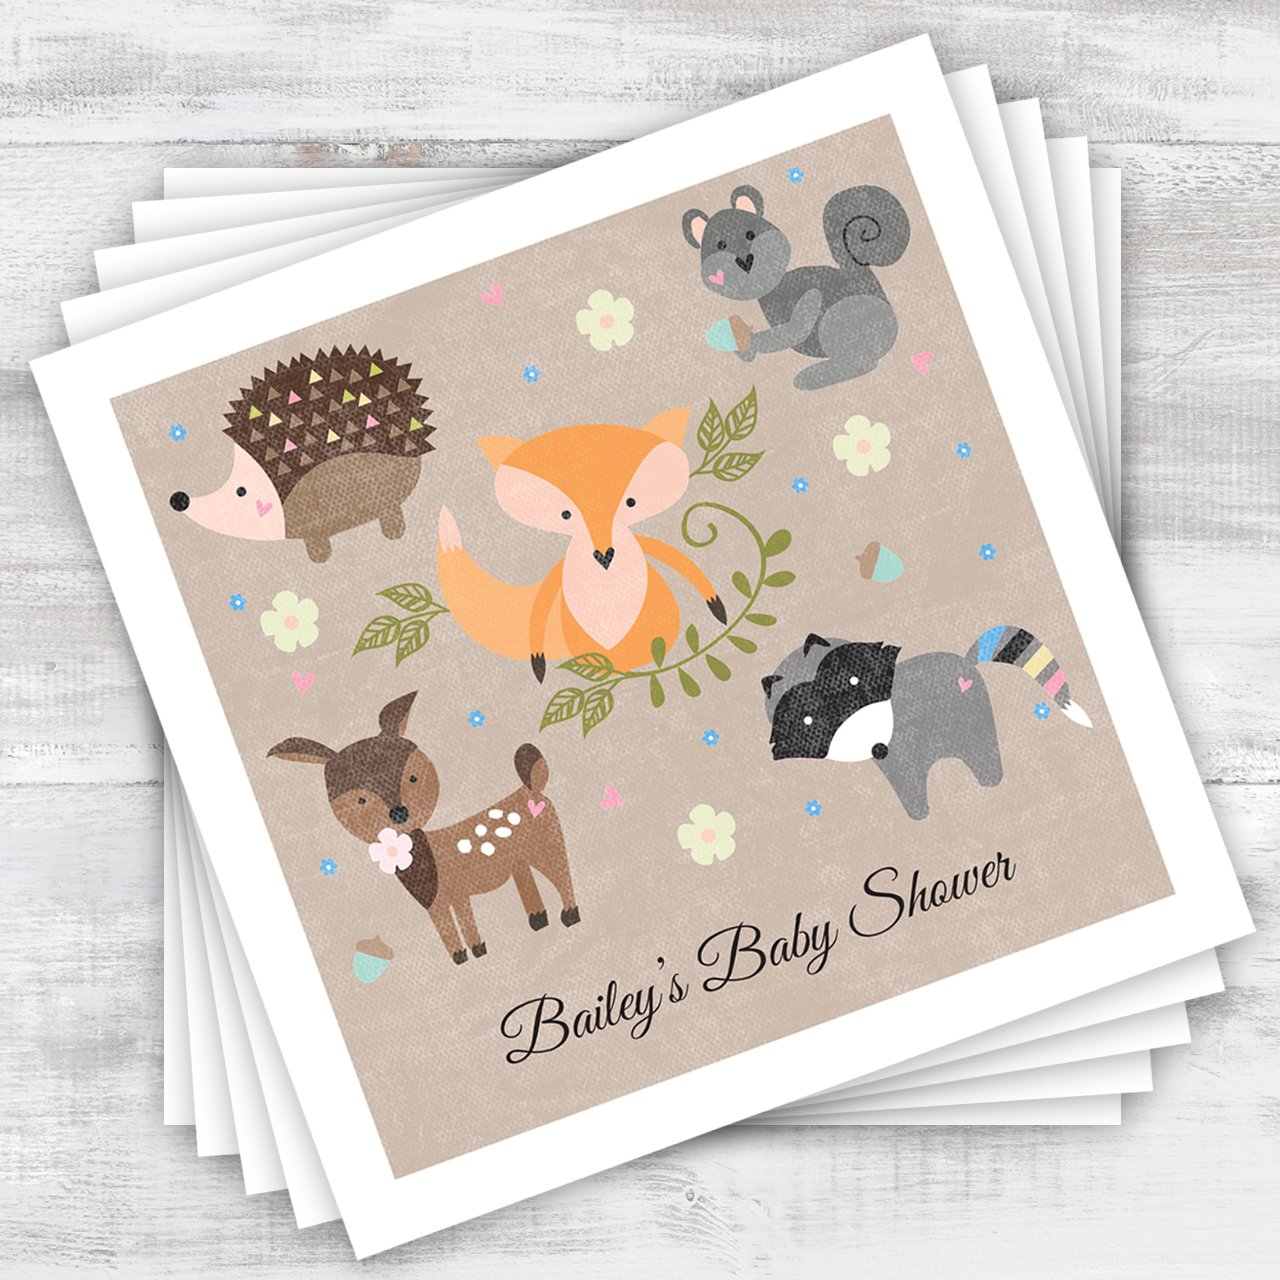 Woodland Animals Personalized Beverage Cocktail Napkins - 100 Custom Printed Paper Napkins by Canopy Street (Image #4)